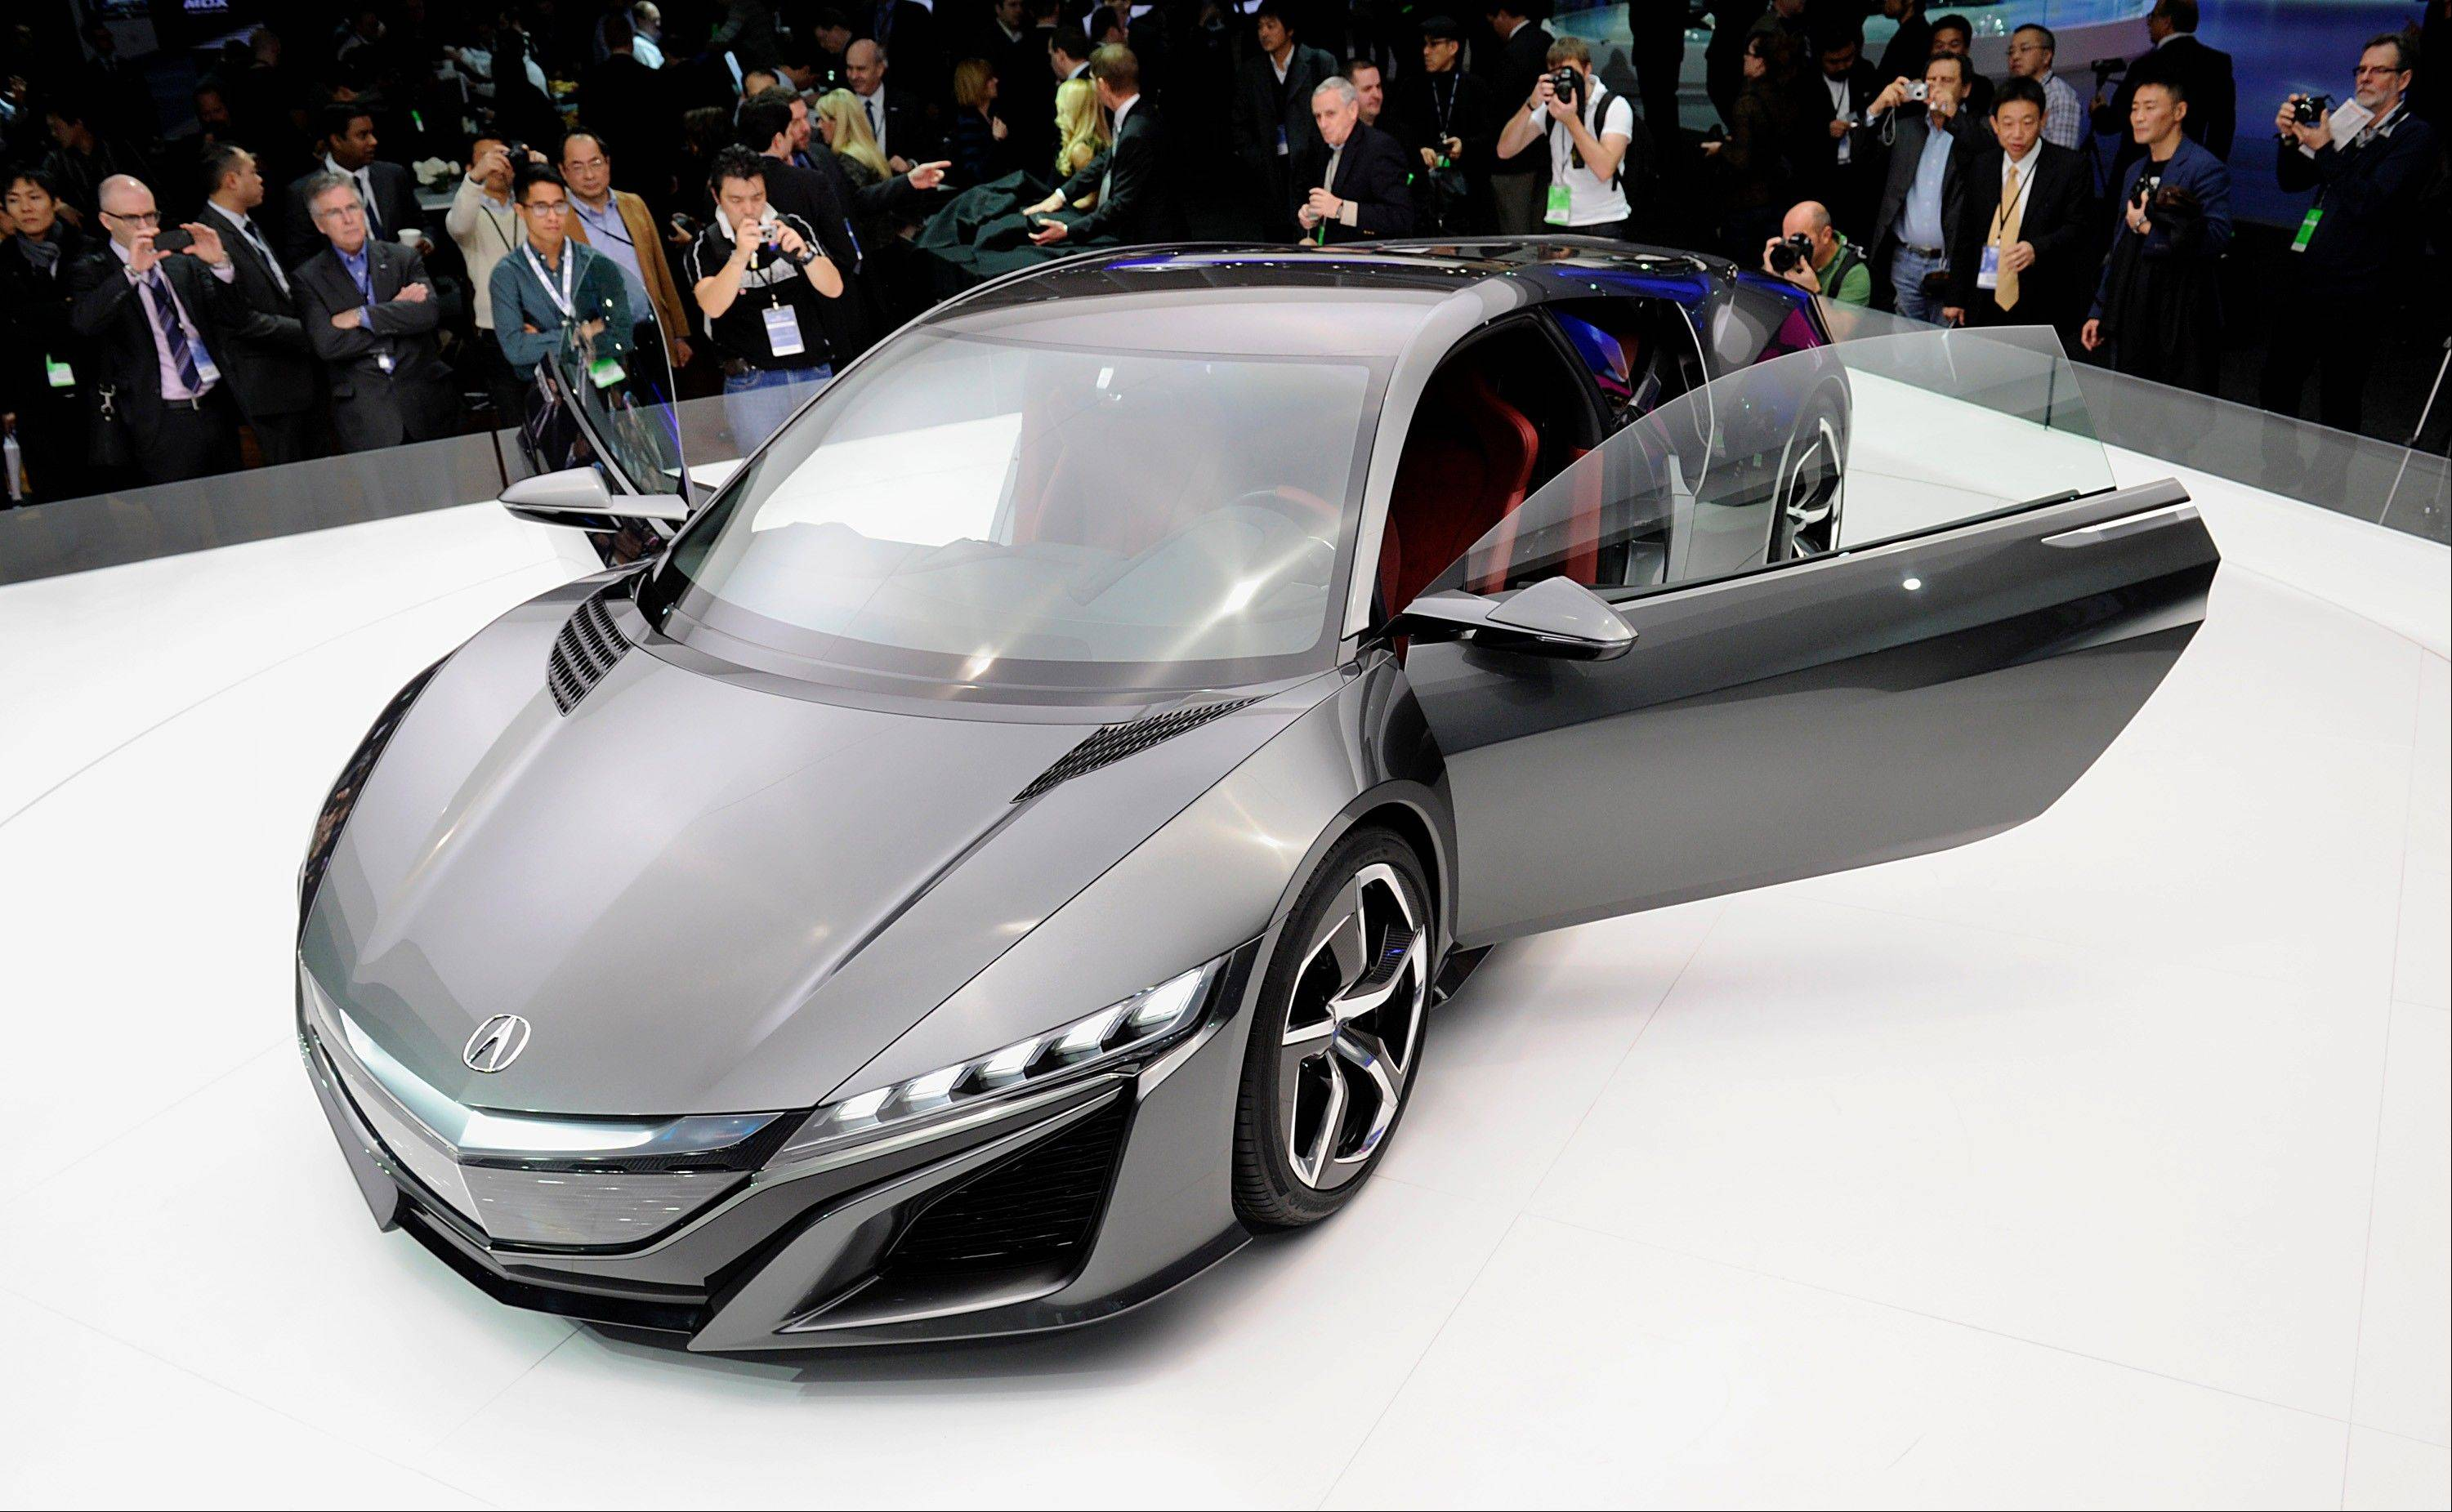 The Honda Motor Co. 2015 Acura NSX concept vehicle is displayed during the 2013 North American International Auto Show (NAIAS) in Detroit, Michigan, U.S., on Tuesday, Jan. 15, 2013.